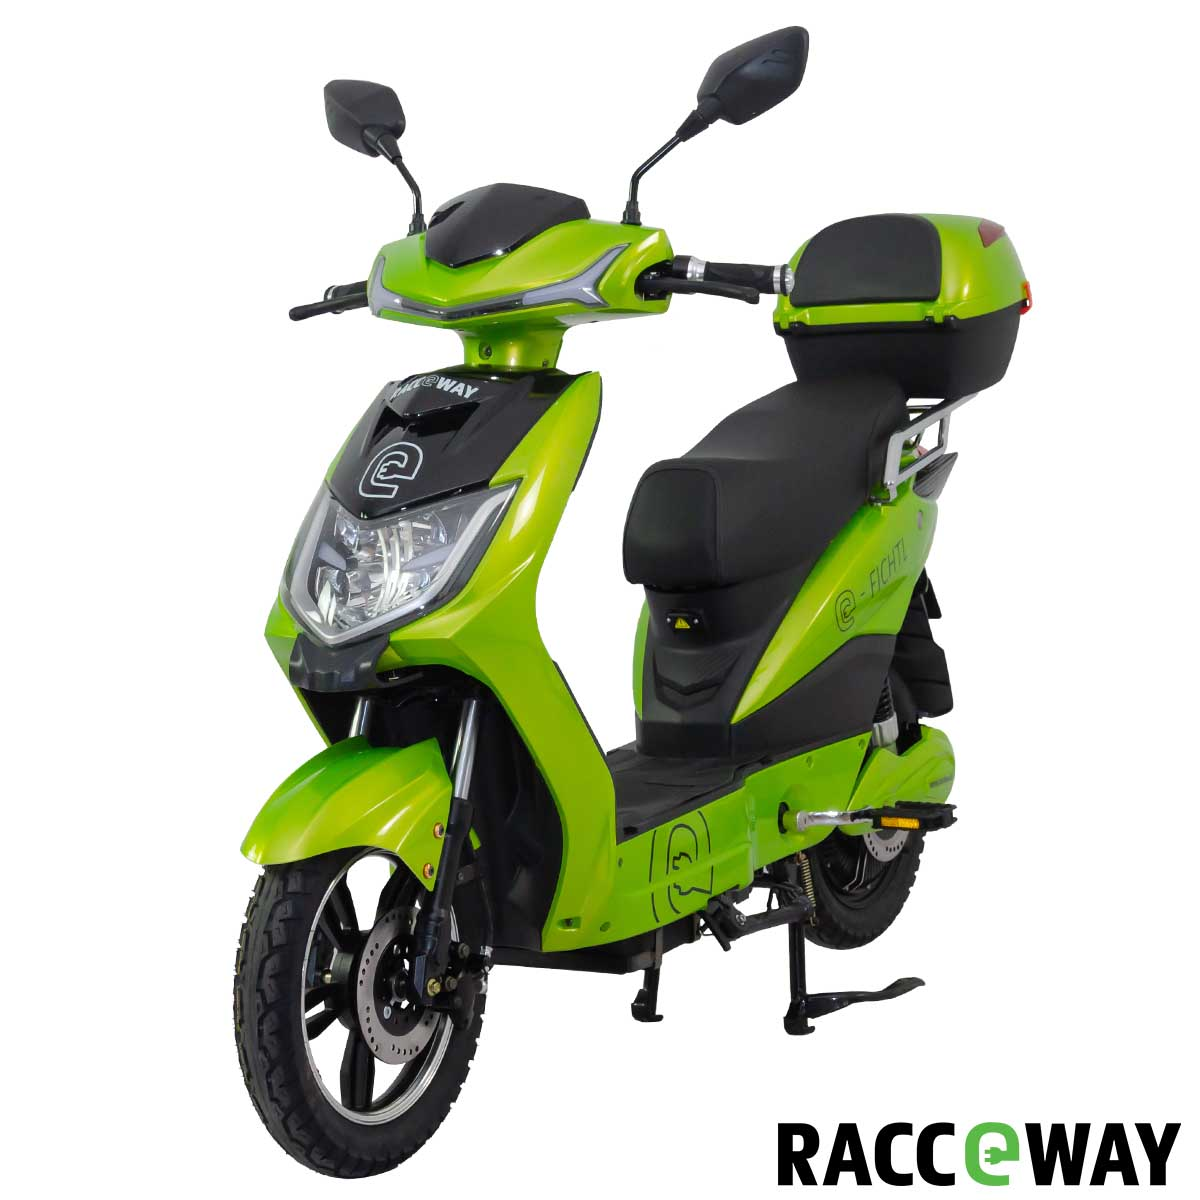 https://www.motoe.cz/inshop/catalogue/products/pictures/motoe-1f-06_a2.jpg?timestamp=20211028110337